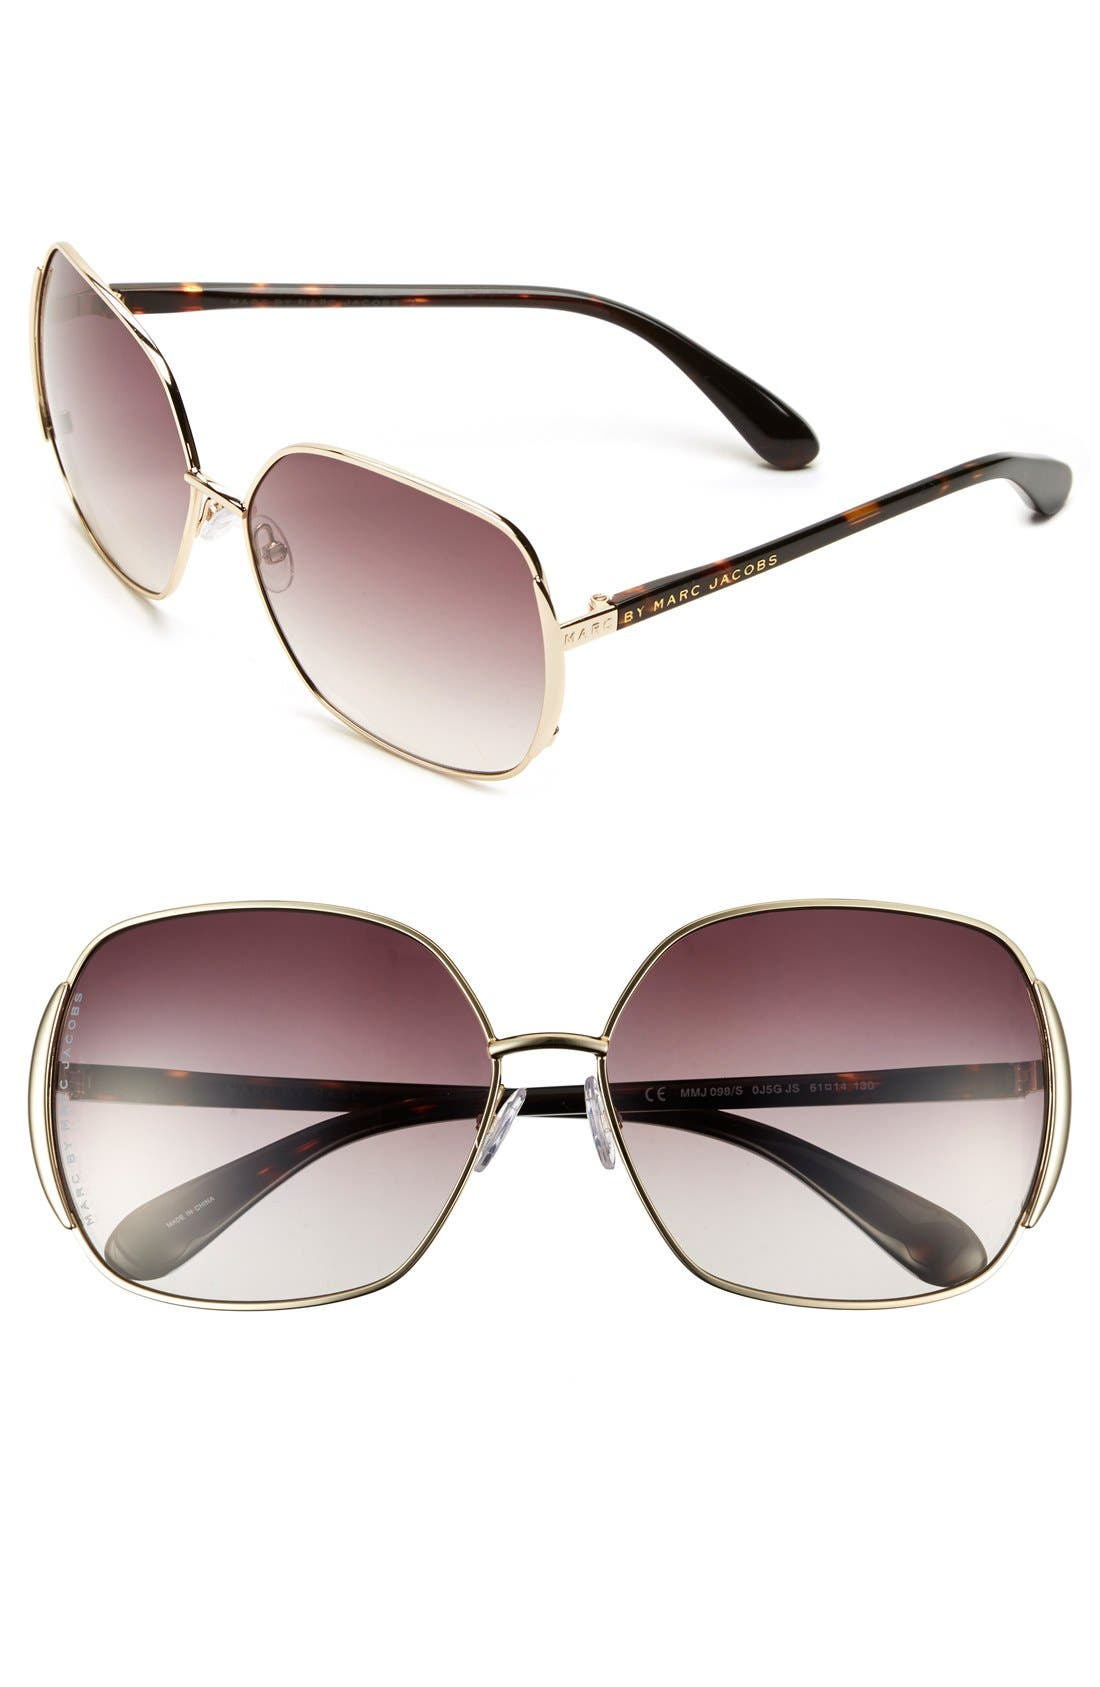 61mm Vintage Inspired Oversized Sunglasses,                         Main,                         color, Gold